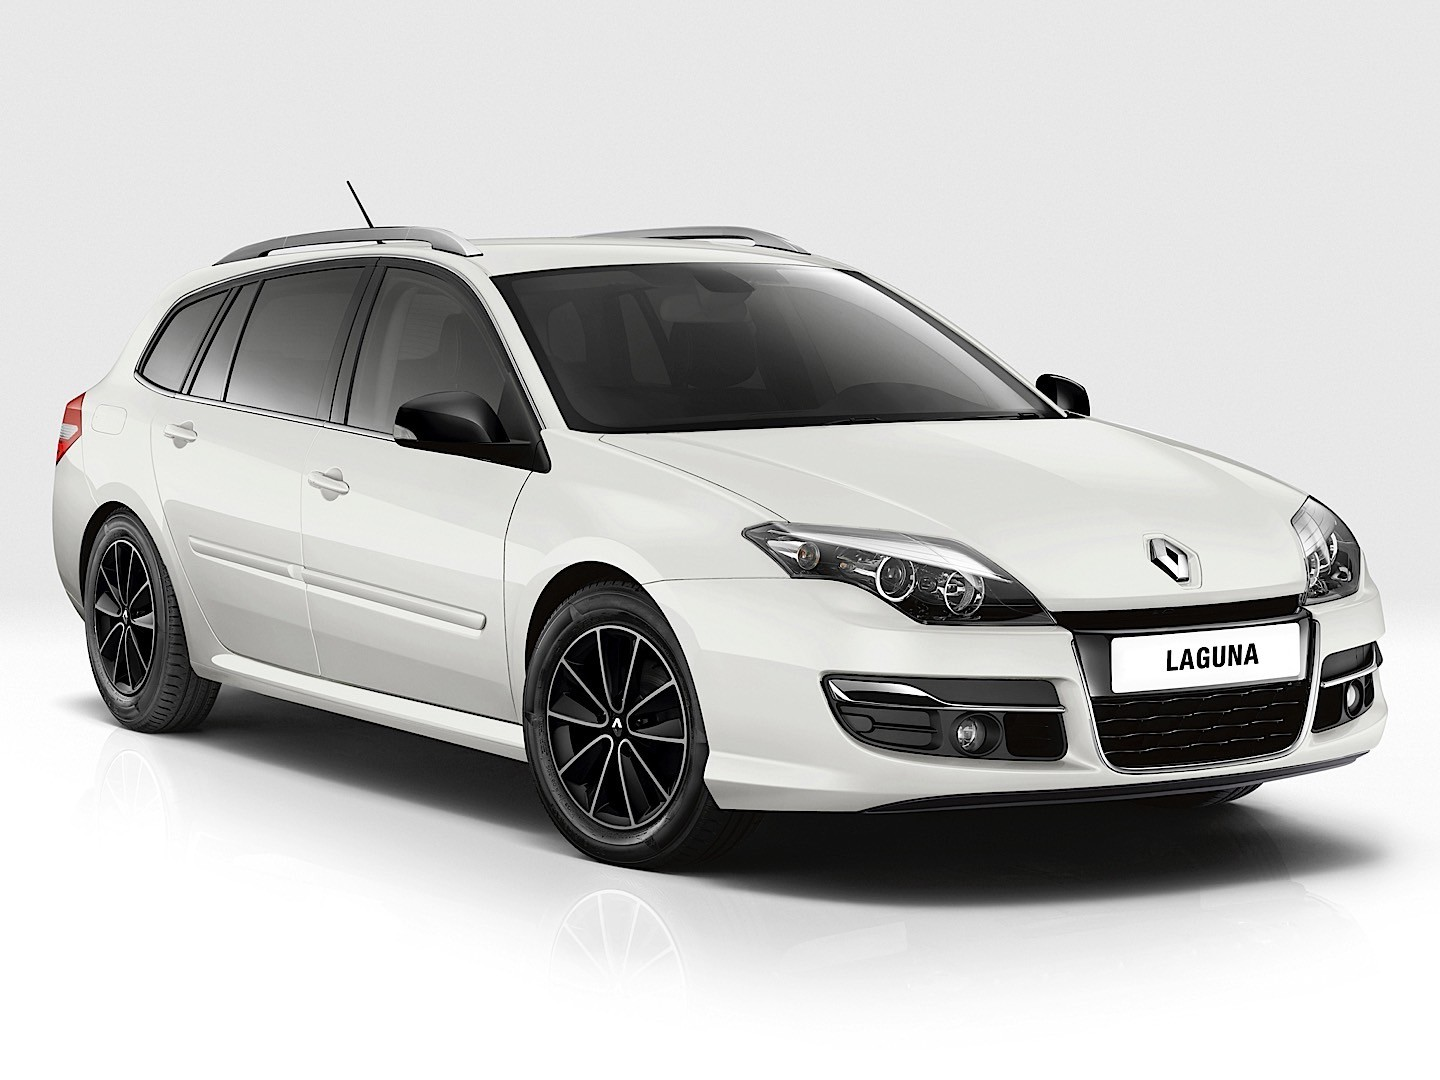 renault laguna estate specs 2010 2011 2012 2013 2014 2015 2016 autoevolution. Black Bedroom Furniture Sets. Home Design Ideas